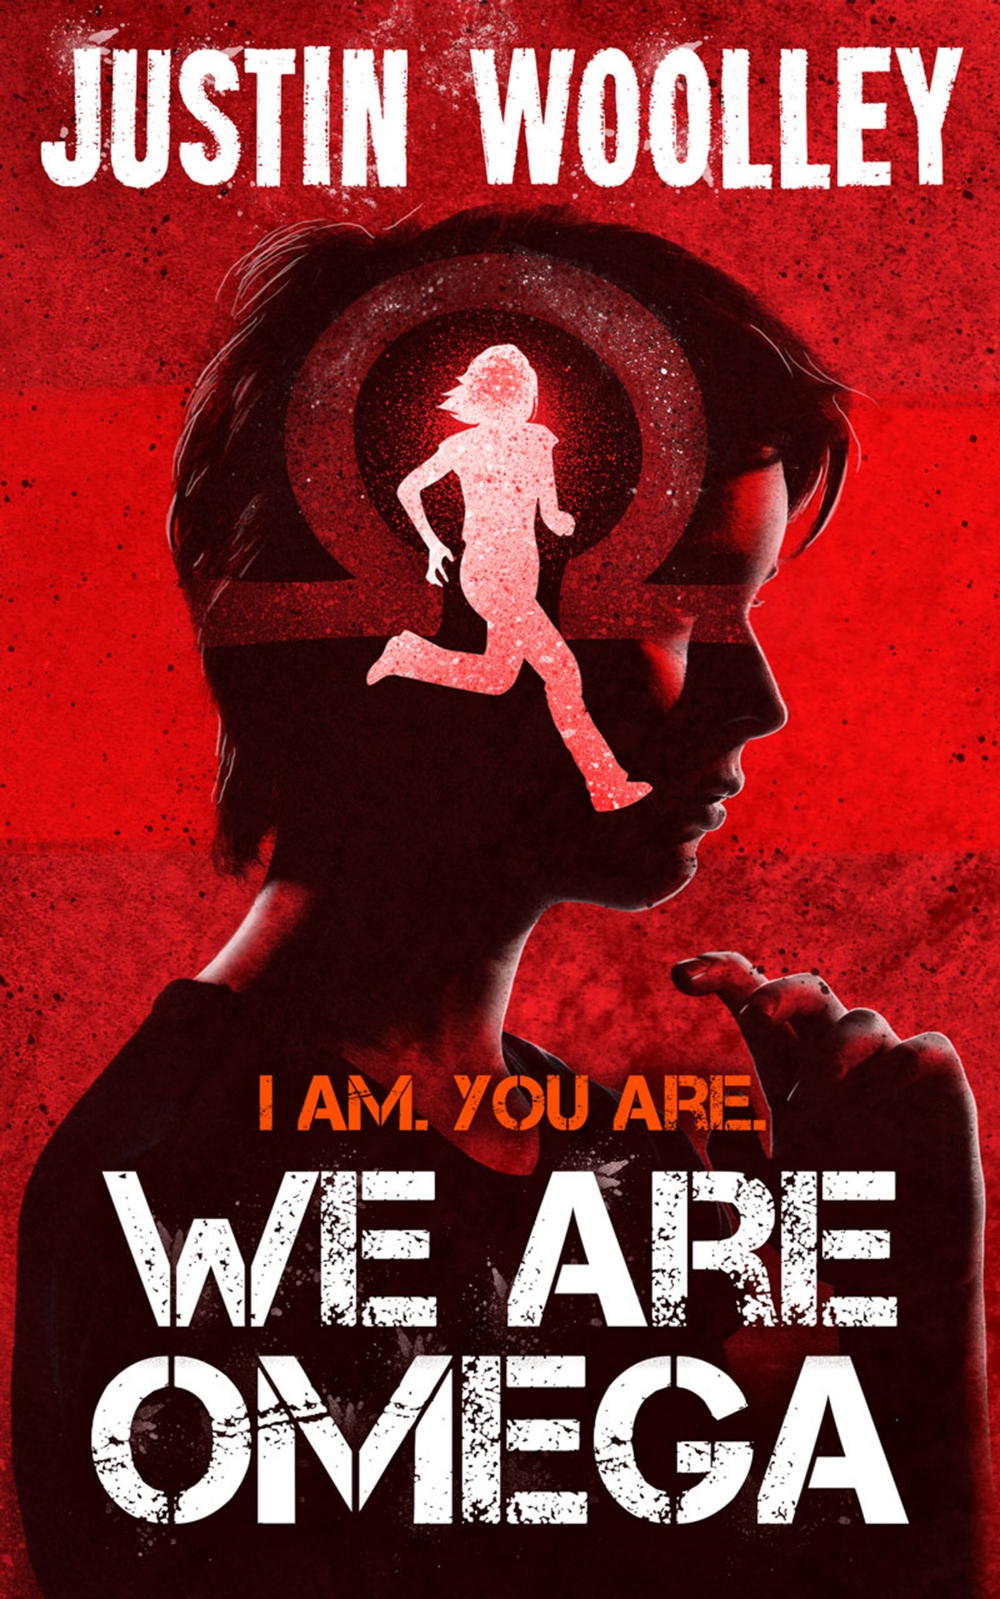 WE ARE OMEGA - I AM. YOU ARE. WE ARE OMEGA.Six years ago an alien spacecraft crashed into the remote Nevada desert, releasing a virus that killed one-fifth of the Earth's population.Molly McManus, whose parents died in the plague, can't forgive the aliens just because they give humanity a few new toys. For Wells Marsden, a computer hacker desperate to atone for his past, the aliens might offer the fresh start he needs.Both Molly and Wells find themselves, for very different reasons, at the Institute for the Betterment of Humanity – a prestigious facility for gifted youth to learn from the aliens. But when they discover Earth's visitors are not as benevolent as they claim they must escape the Institute, join a mysterious resistance group known only as Omega, and save humanity from disaster – so long as humanity itself doesn't get in their way.WE ARE OMEGA is a science fiction adventure featuring hacking, telekinetic powers, giant alien crabs out to control the planet and two troubled teens who just might be the best hope we have. It's a thundering read for fans of Illuminae, The 5th Wave, and I Am Number Four.